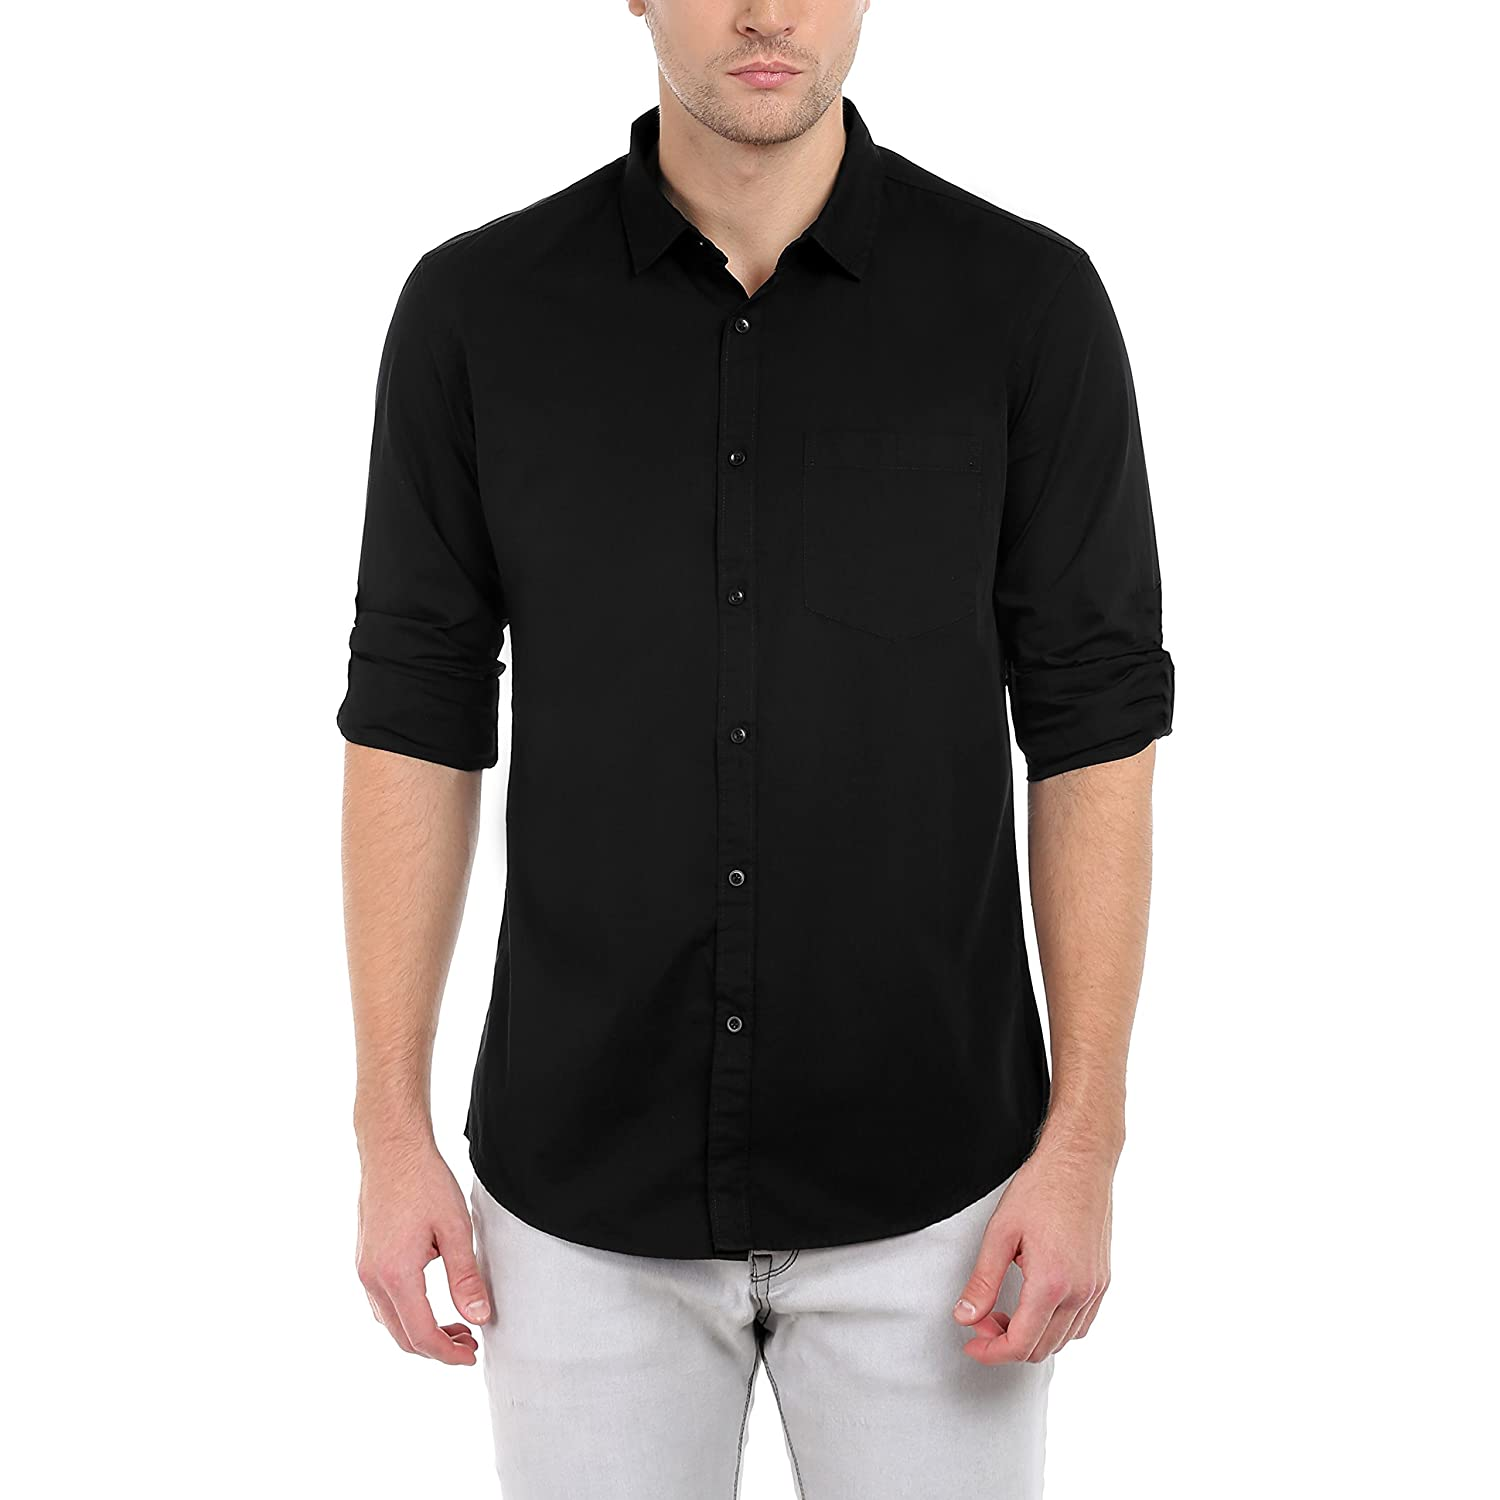 Shirts stylish online purchase